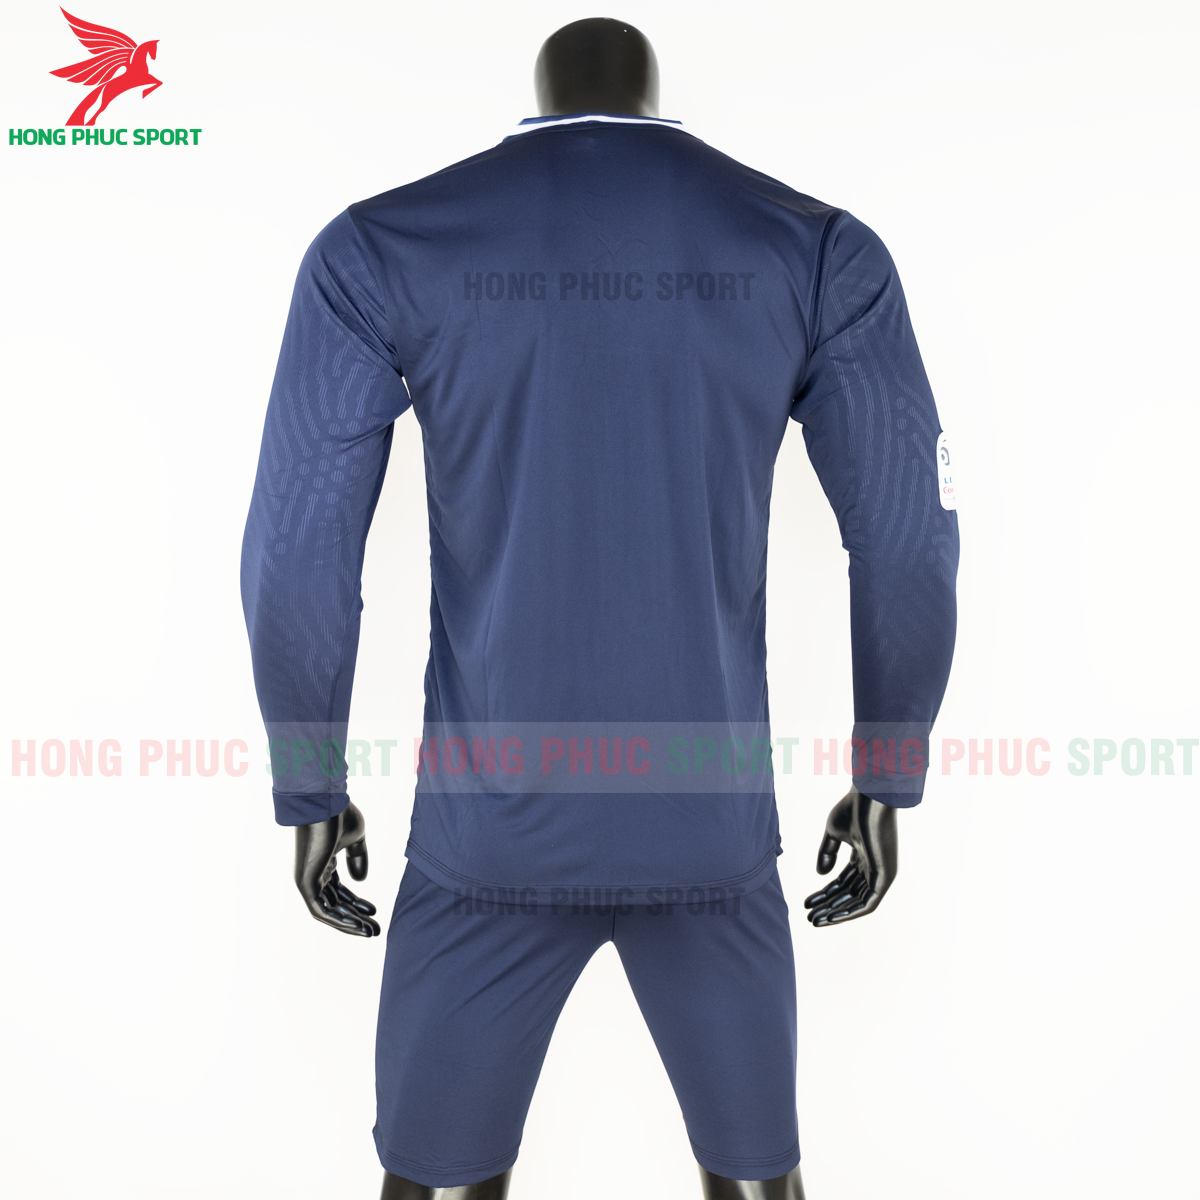 https://cdn.hongphucsport.com/unsafe/s4.shopbay.vn/files/285/ao-dai-tay-psg-2020-san-nha-8-5f8fe1296d225.png